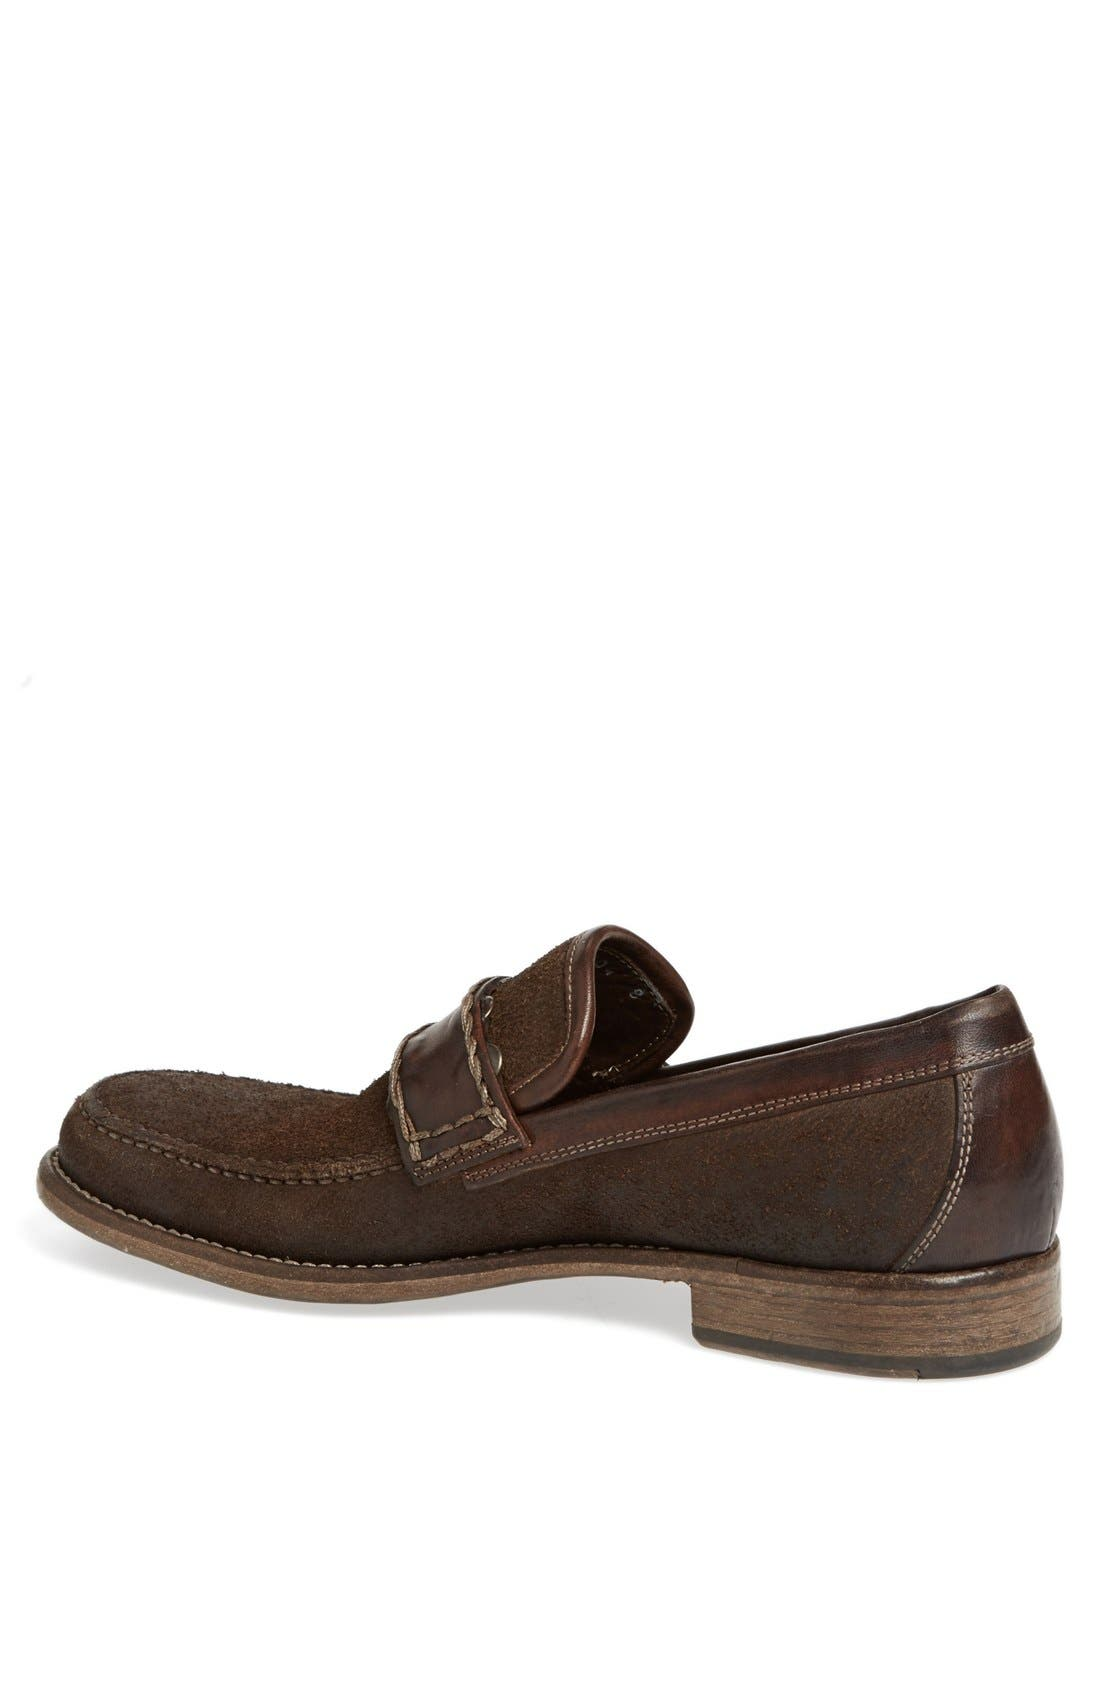 Alternate Image 2  - John Varvatos Collection 'Ludwig Signature' Penny Loafer